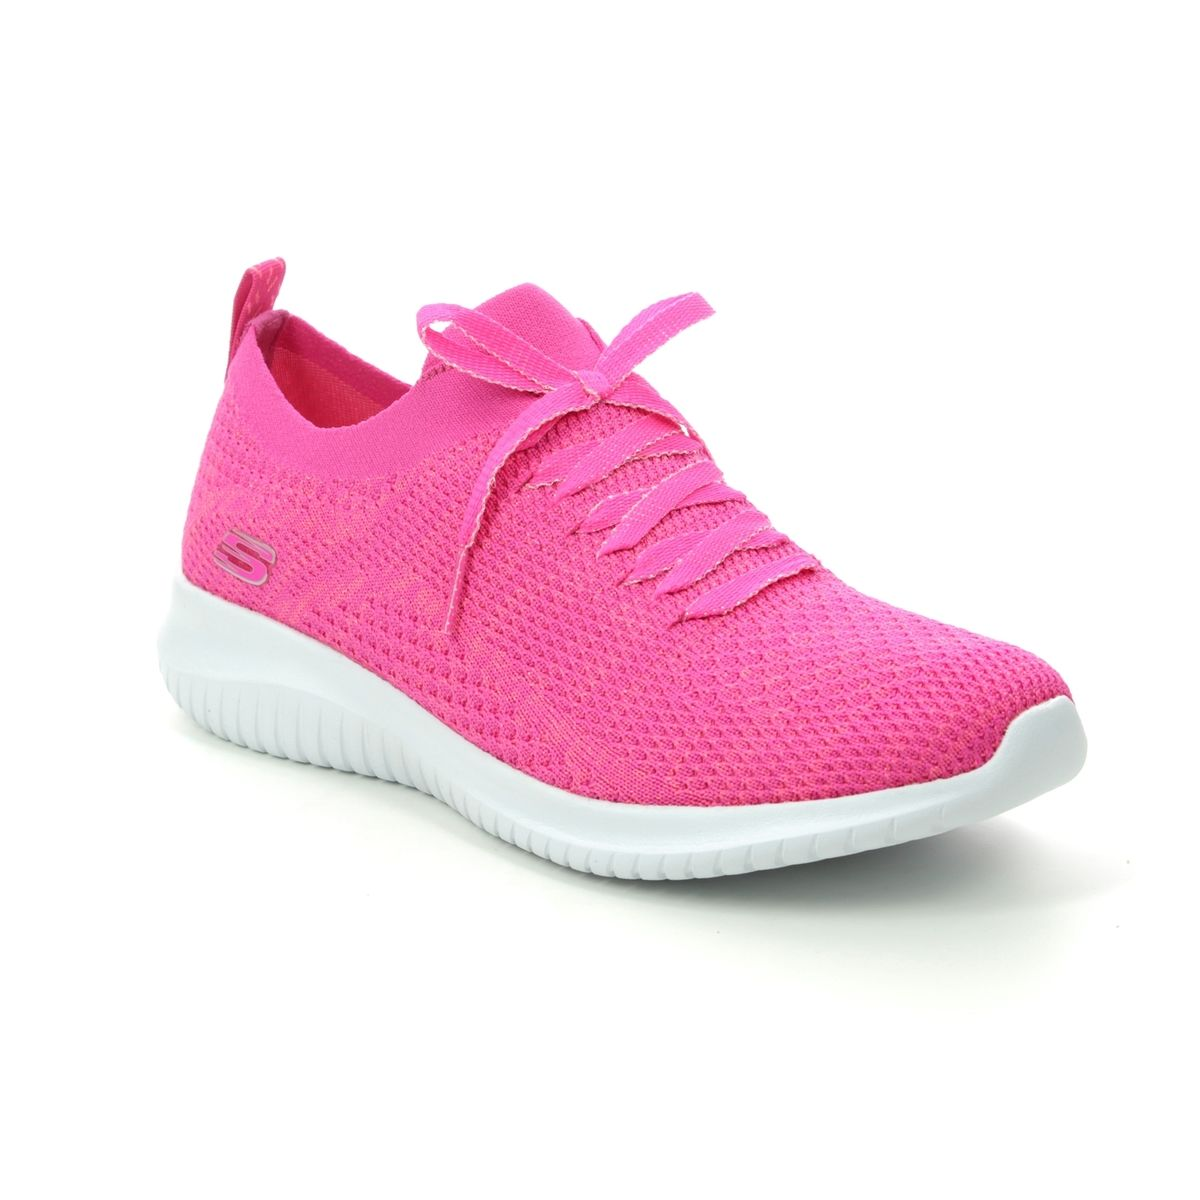 skechers trainers pink